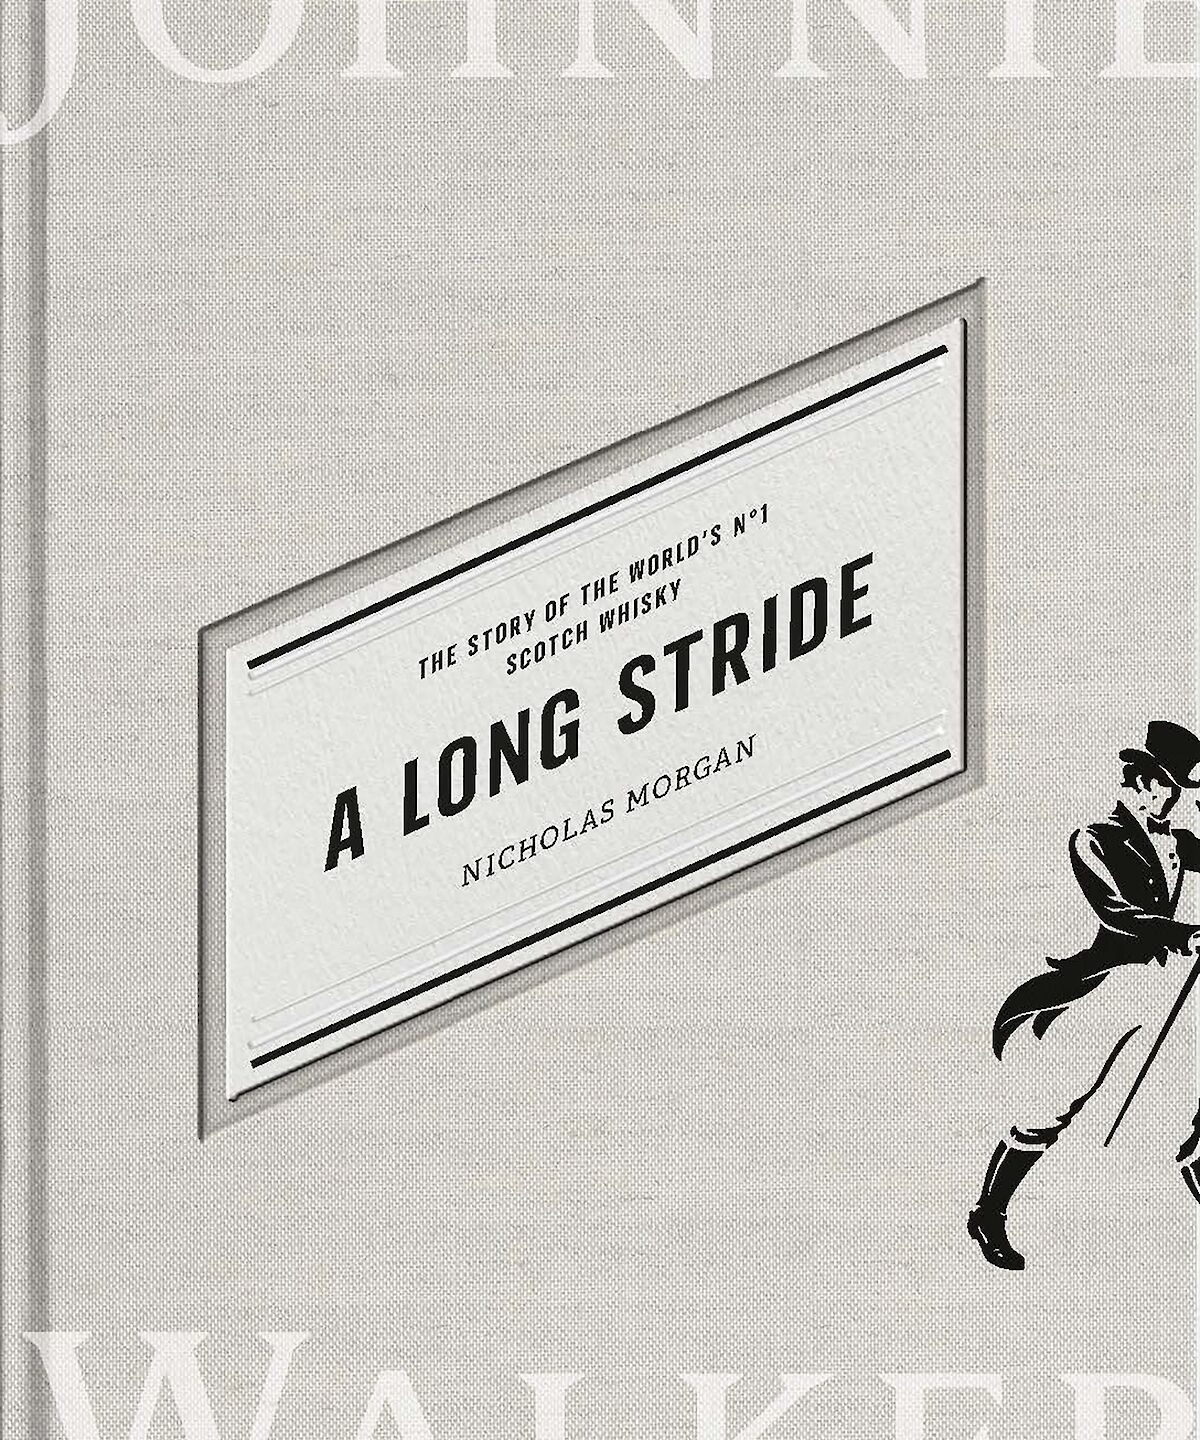 A Long Stride – The Story of the World's No. 1 Scotch Whisky